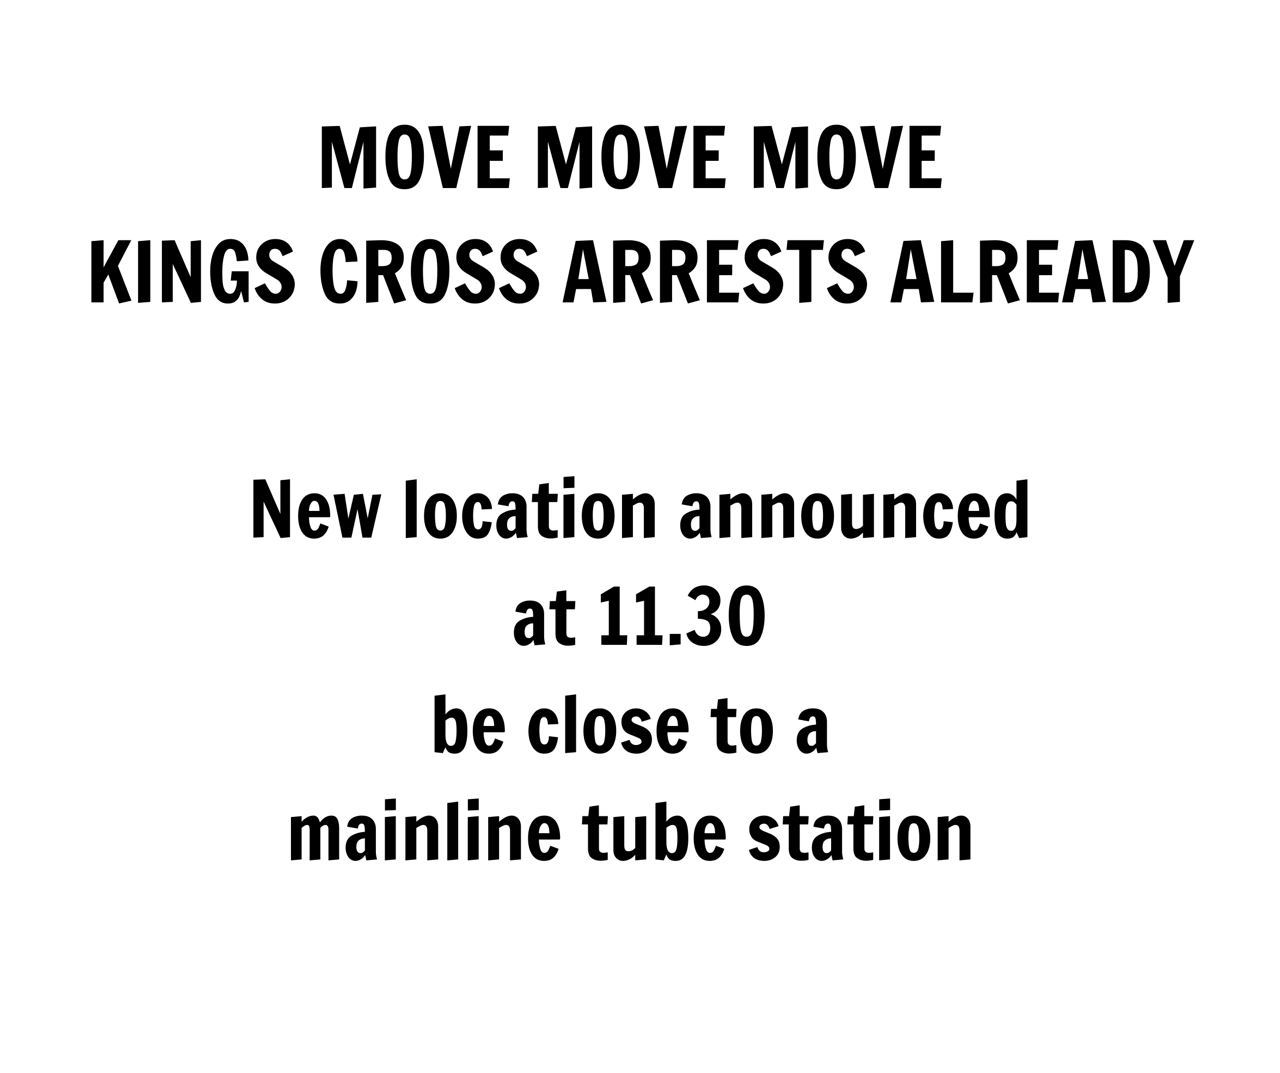 Unite for Freedom - MARBLE ARCH - FINAL - STAY AWAY FROM KINGS CROSS UPDATE COMING ON TELEGRAM